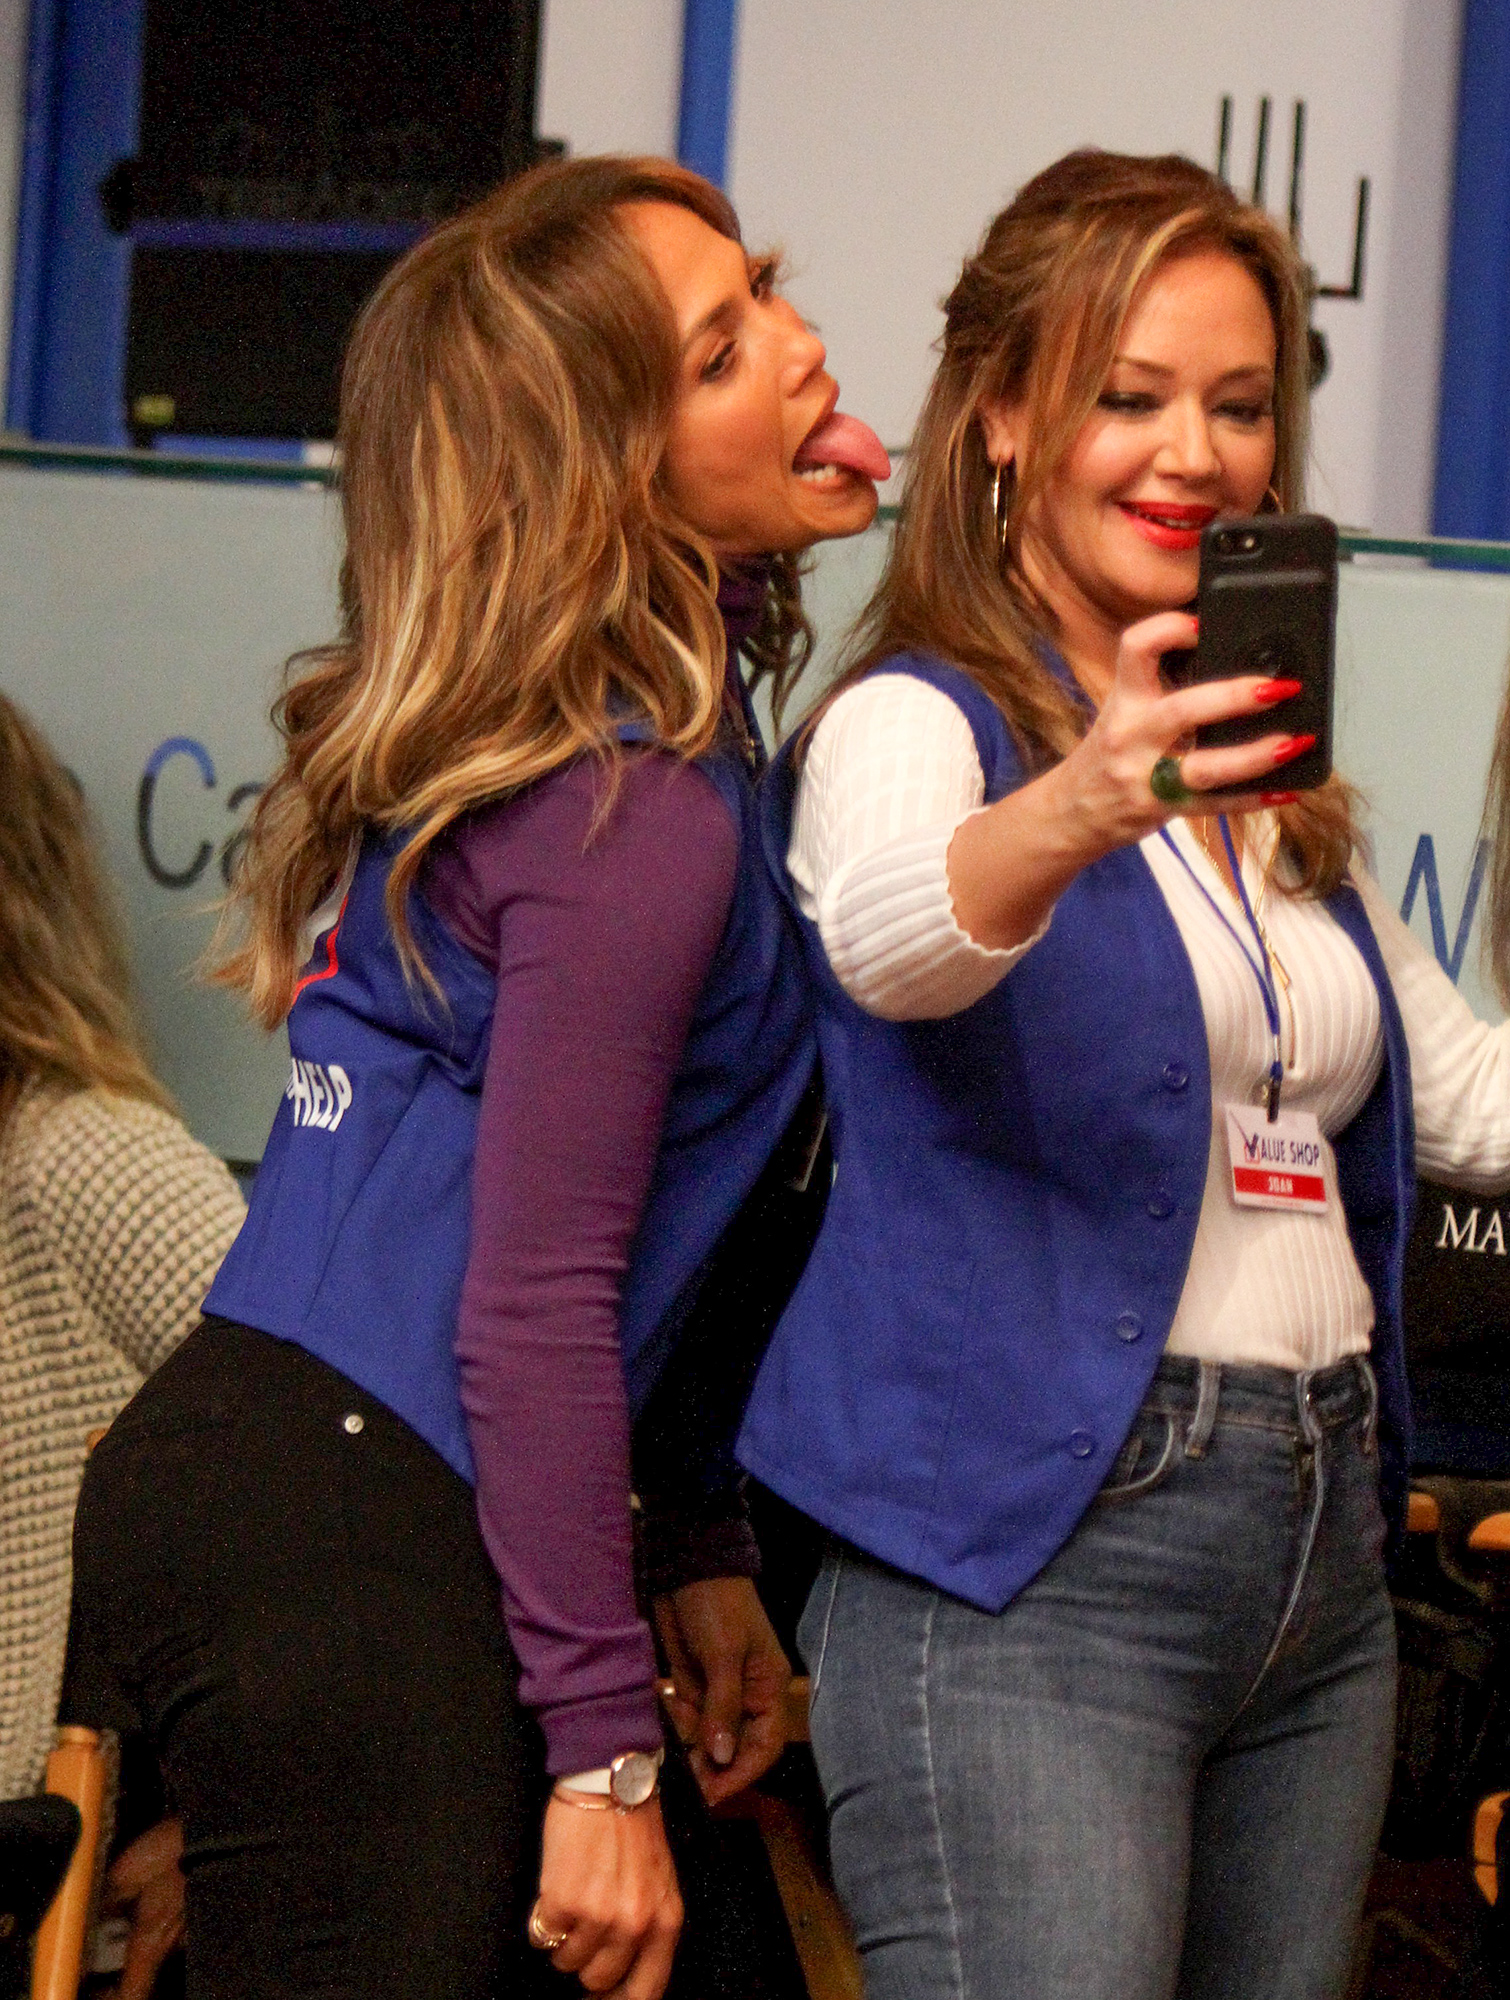 """Jennifer Lopez and Leah Remini taking selfies at the """"Second Act"""" movie set in Queens"""